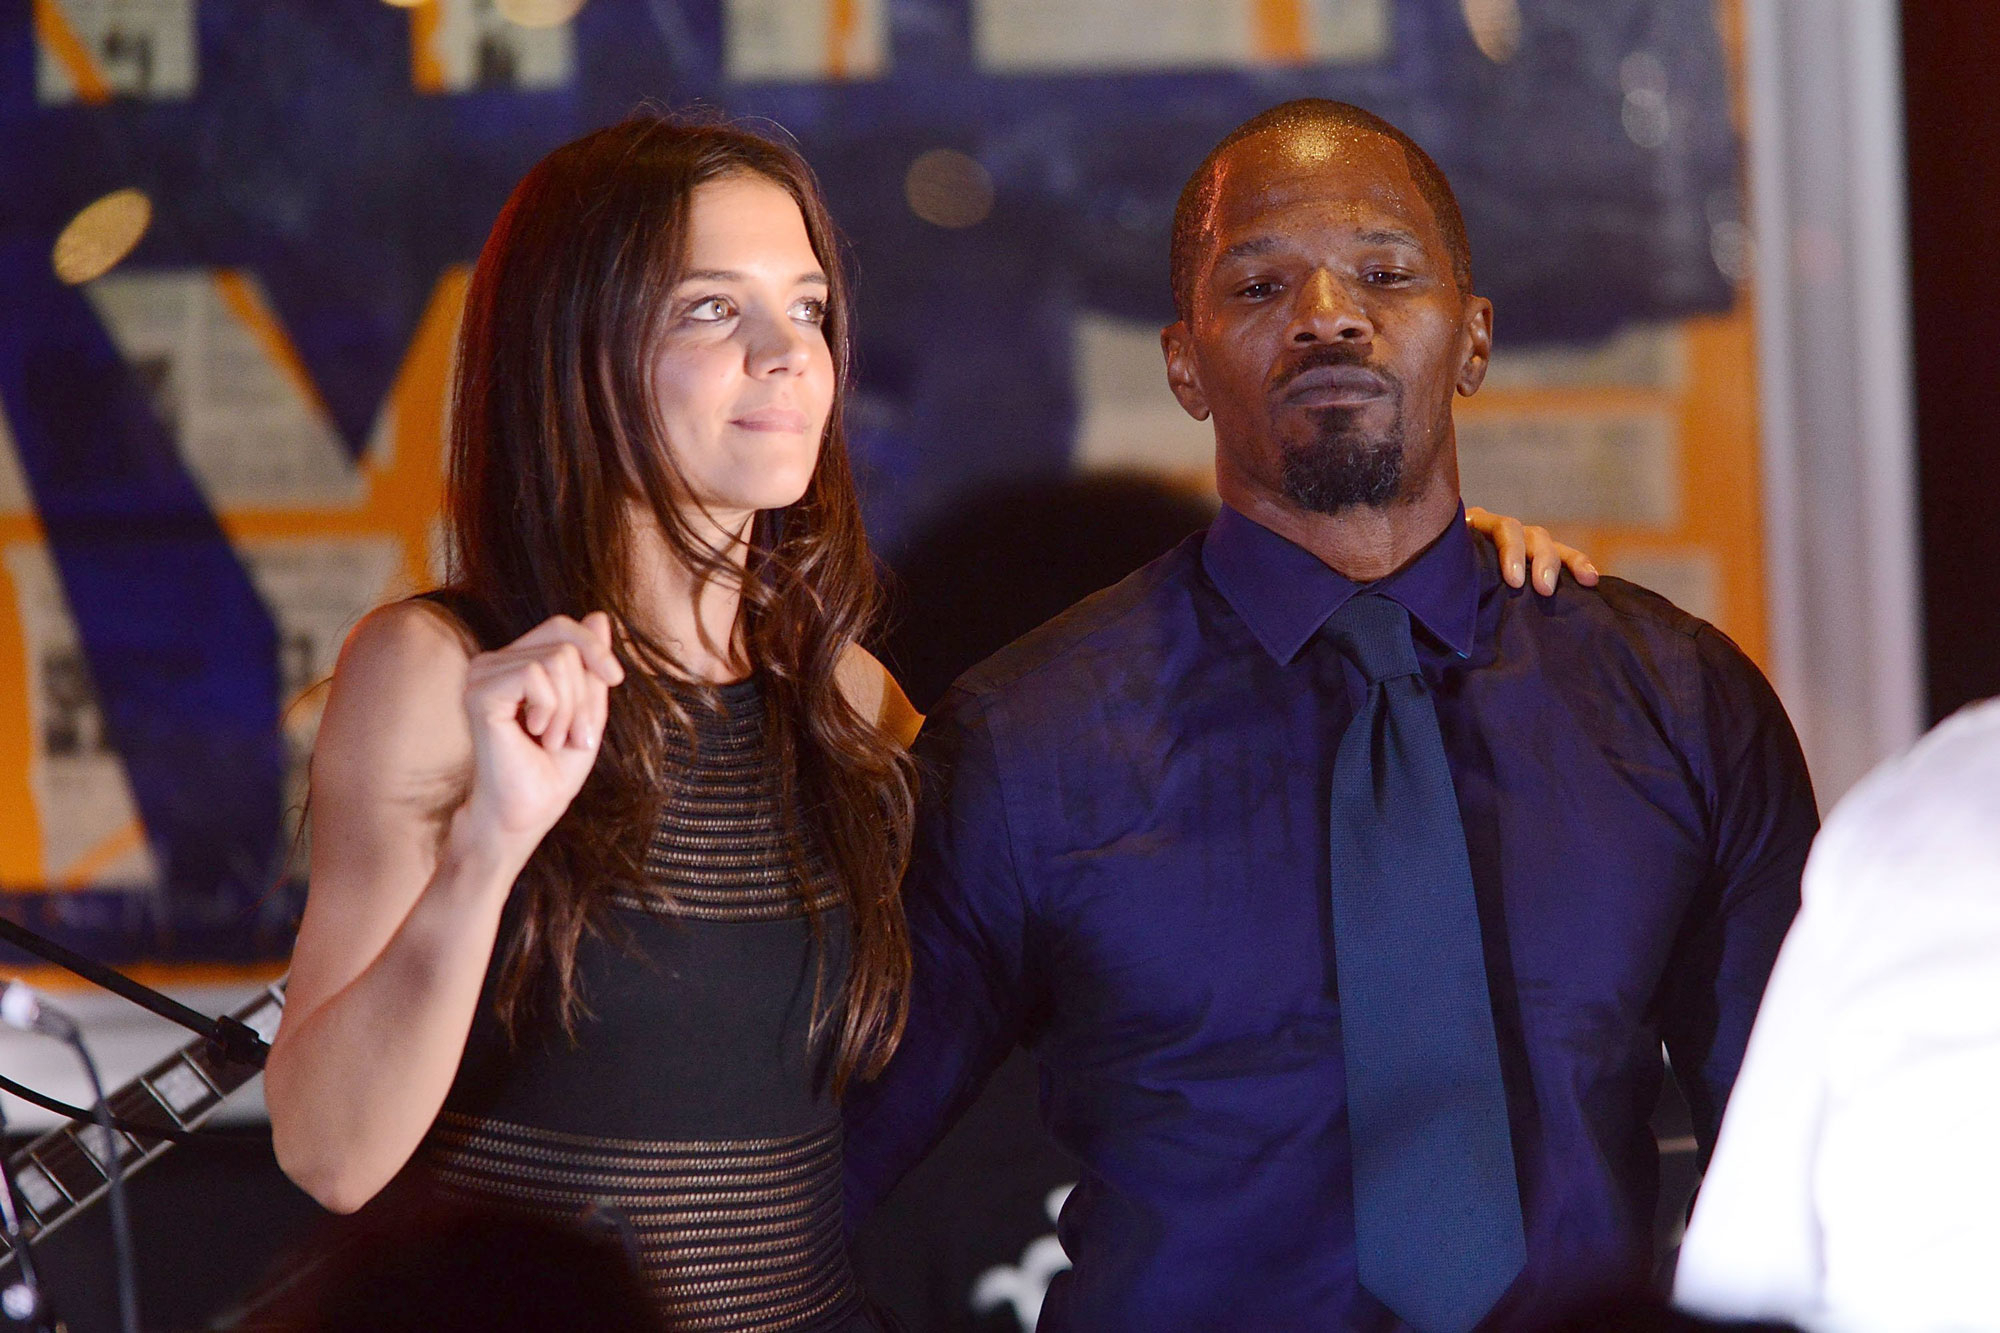 Jamie Foxx and Katie Holmes have been dating for more than 5 years now